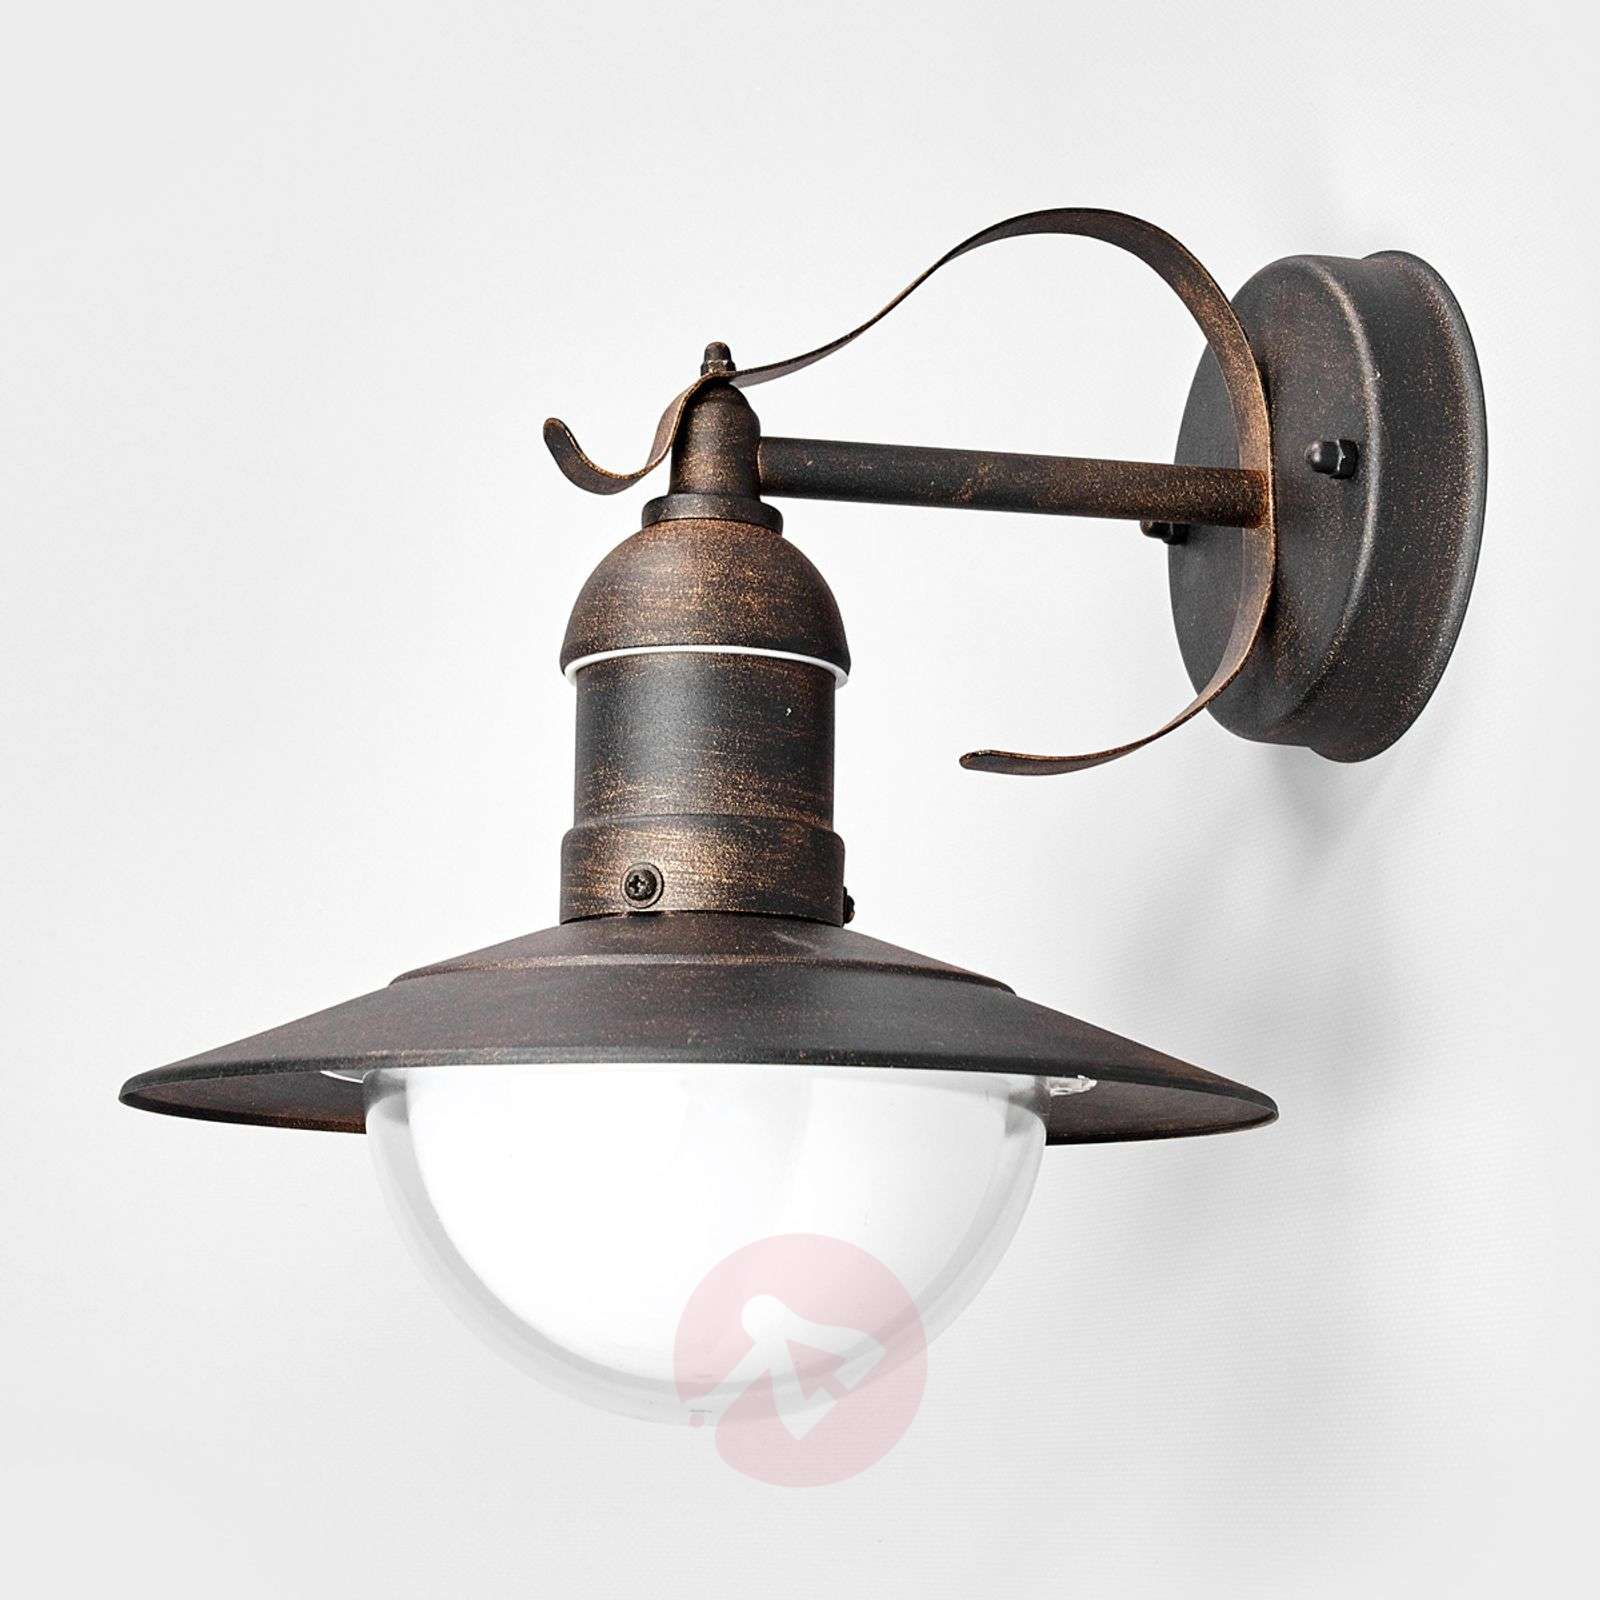 Antique-looking LED outdoor wall light Clea-9960050-01